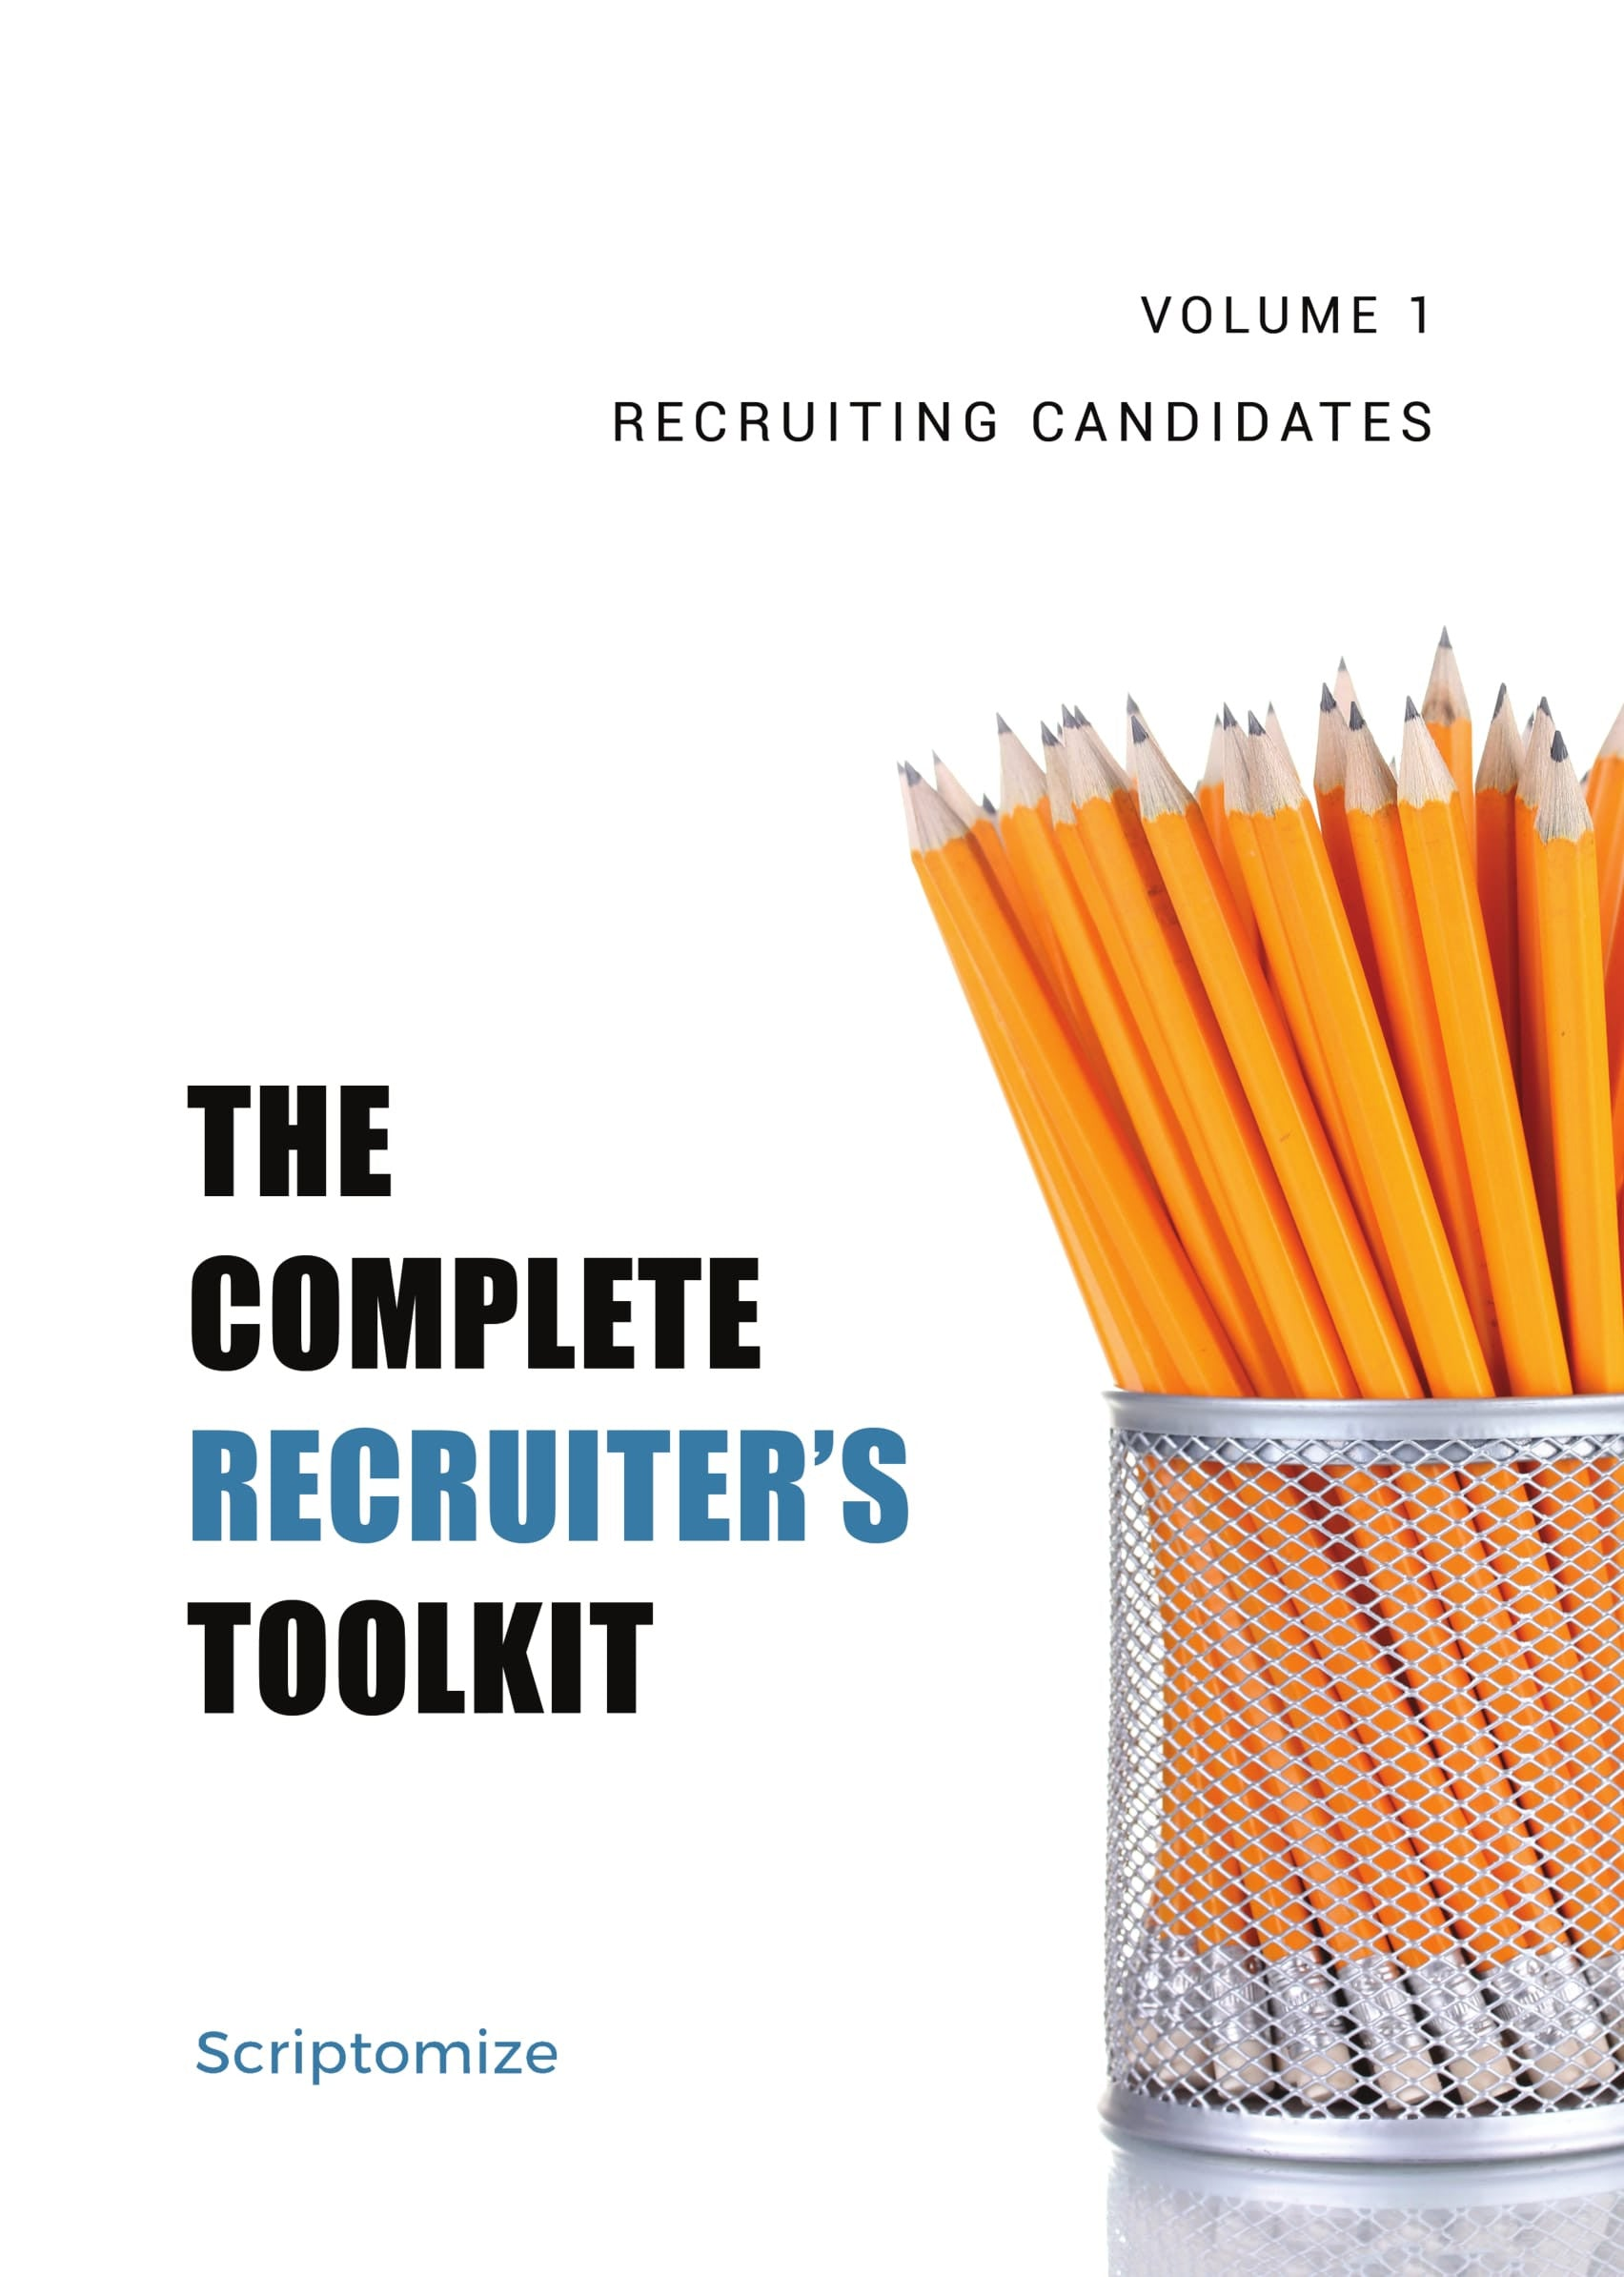 The Complete Recruiter's Toolkit Volume 1: Recruiting Candidates